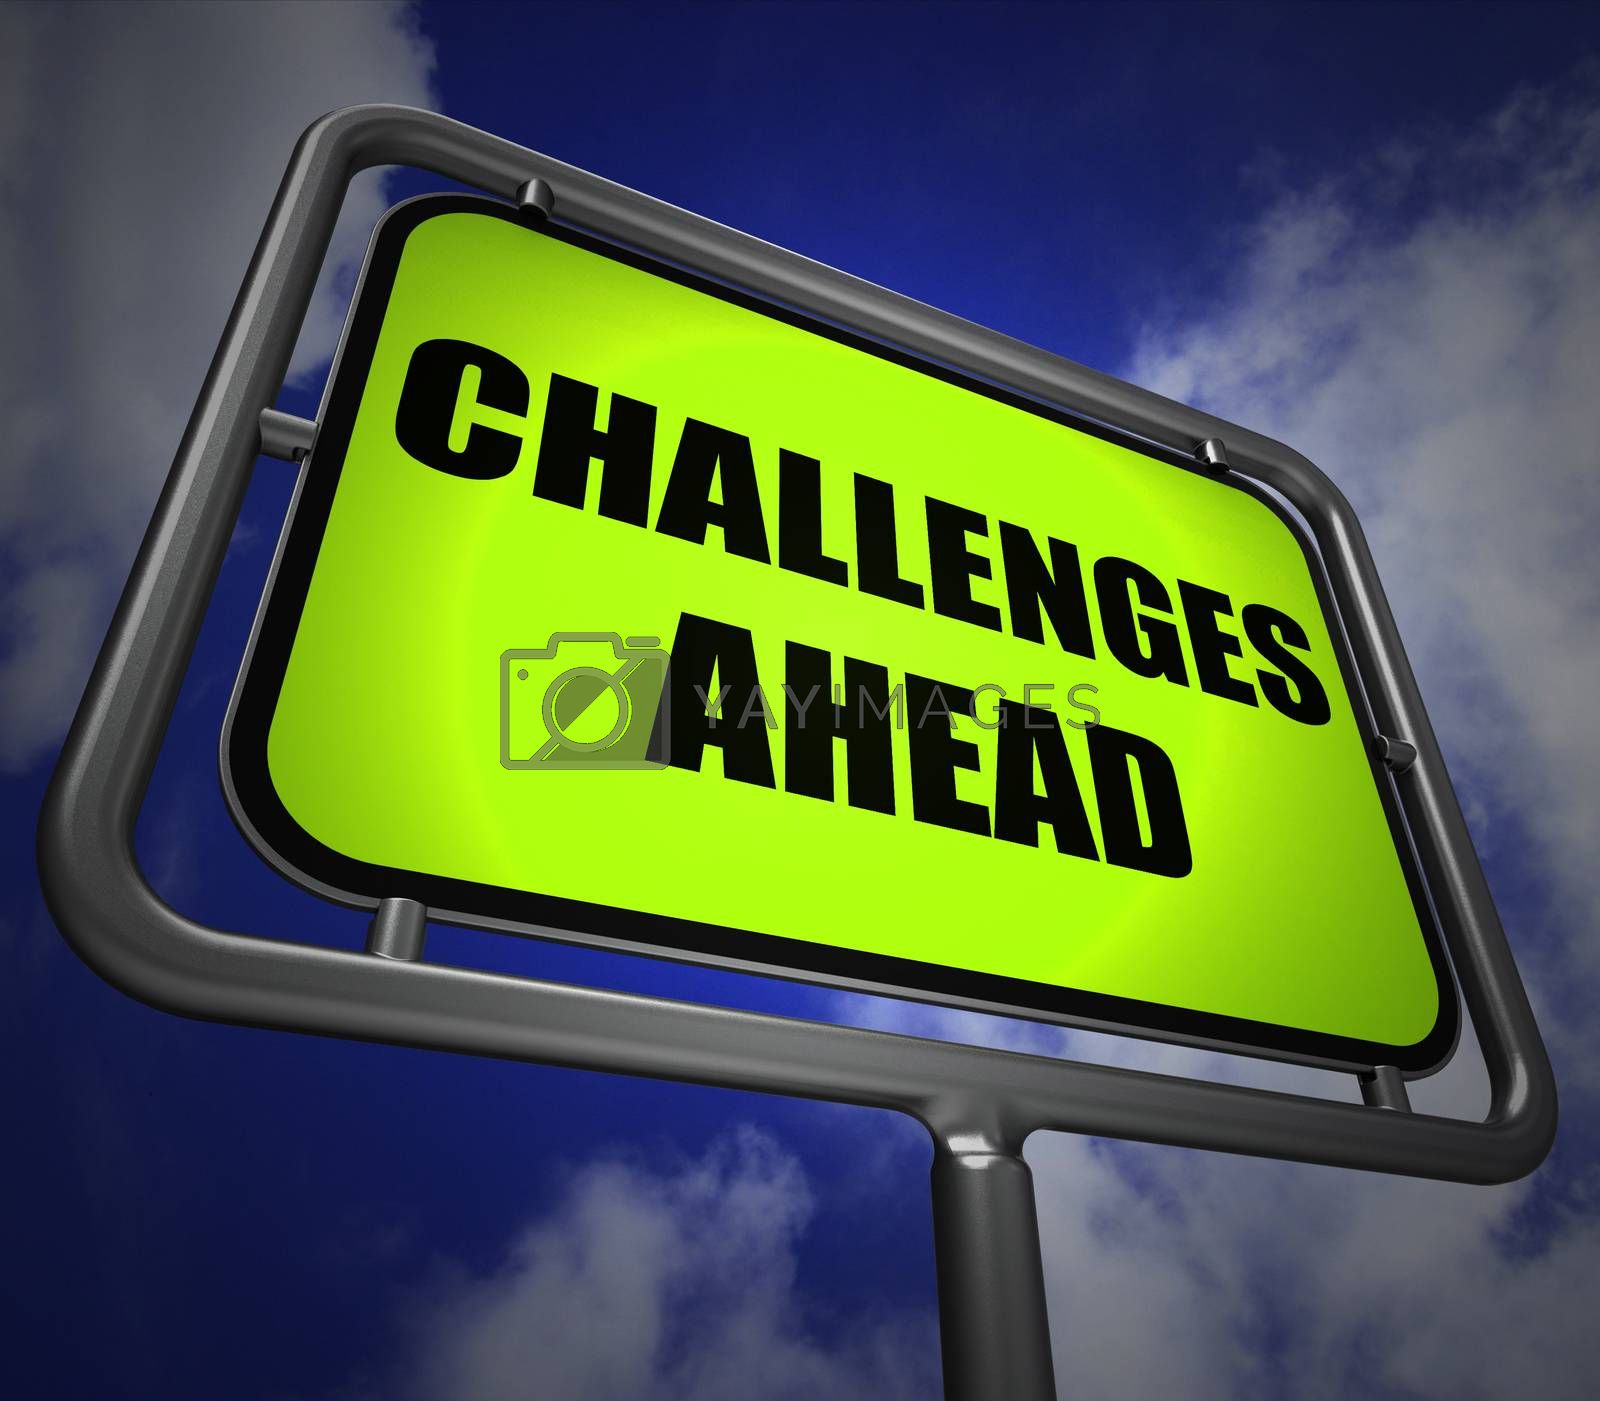 Challenges Ahead Signpost Shows to Overcome a Challenge or Diffi by stuartmiles